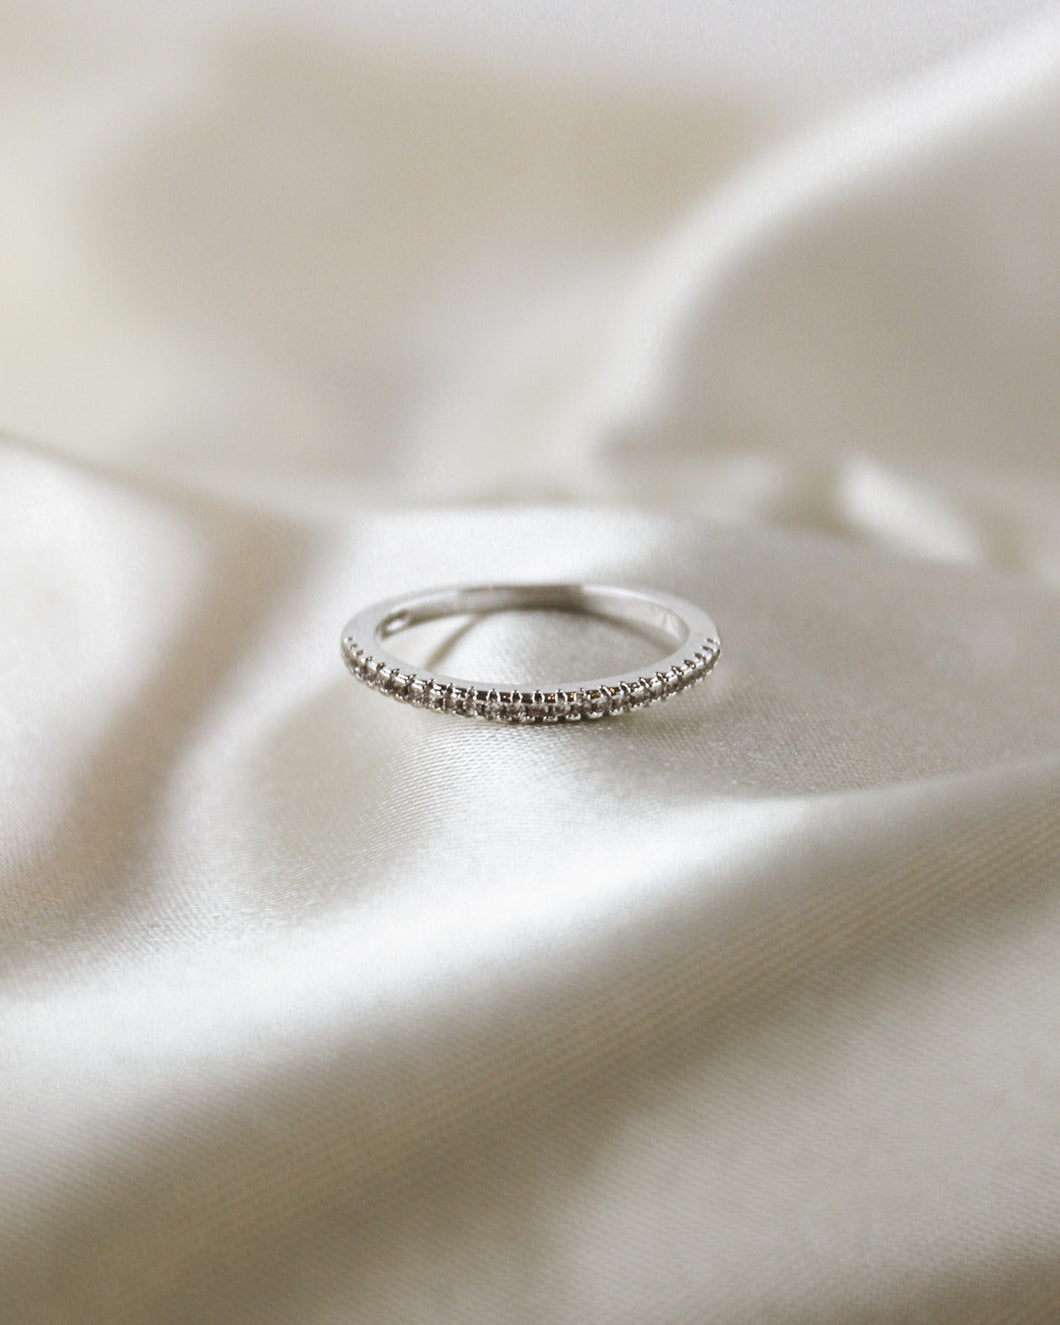 The Simple Ring